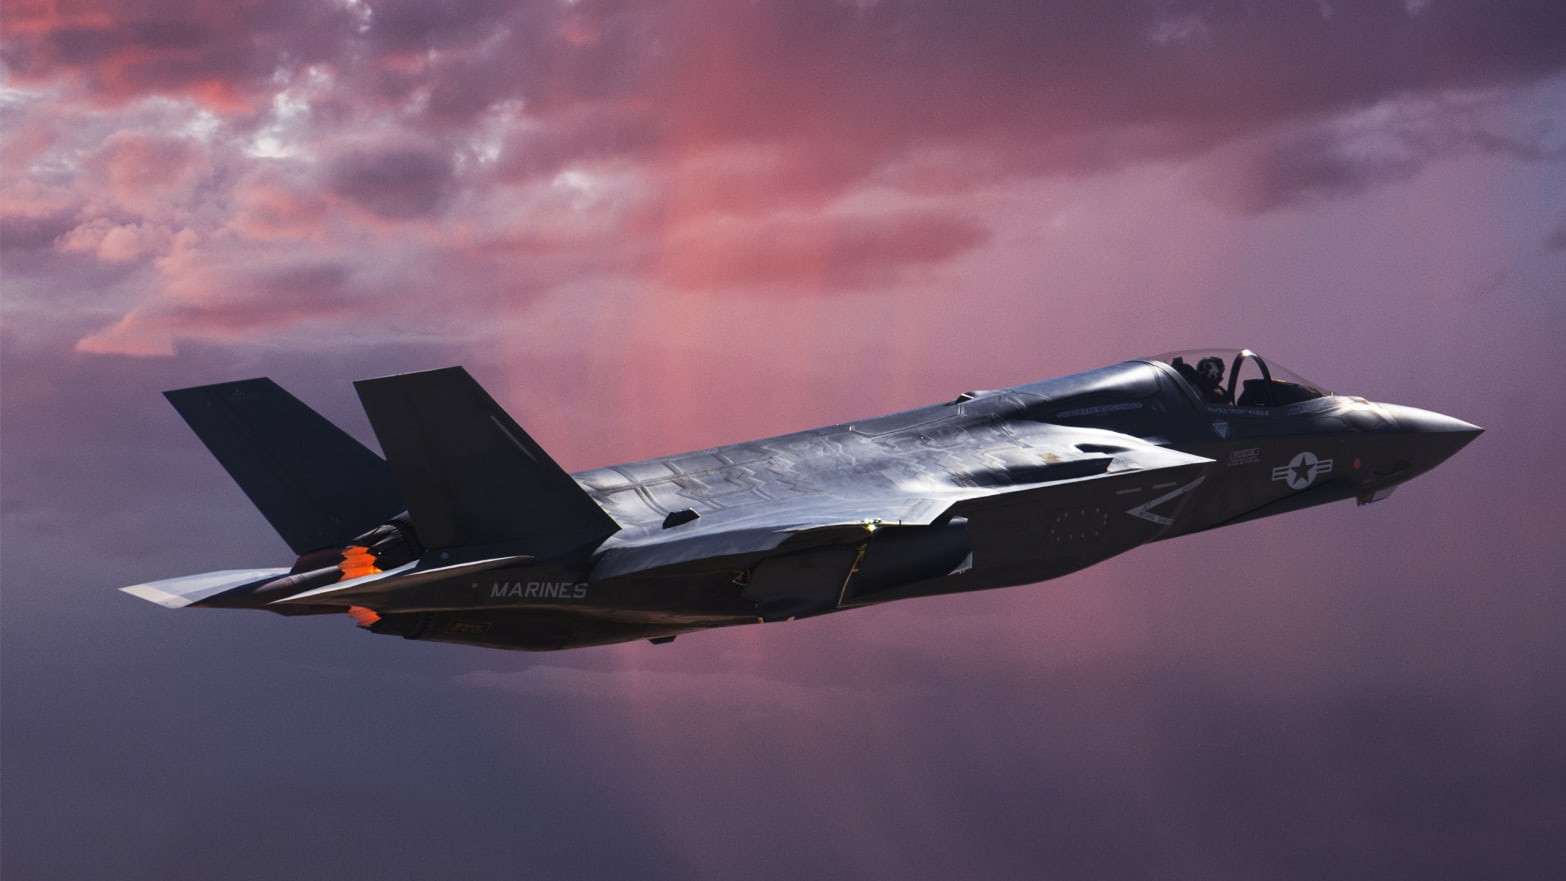 The Air Force Just Bought 100 Stealth Fighters That Can't Fight